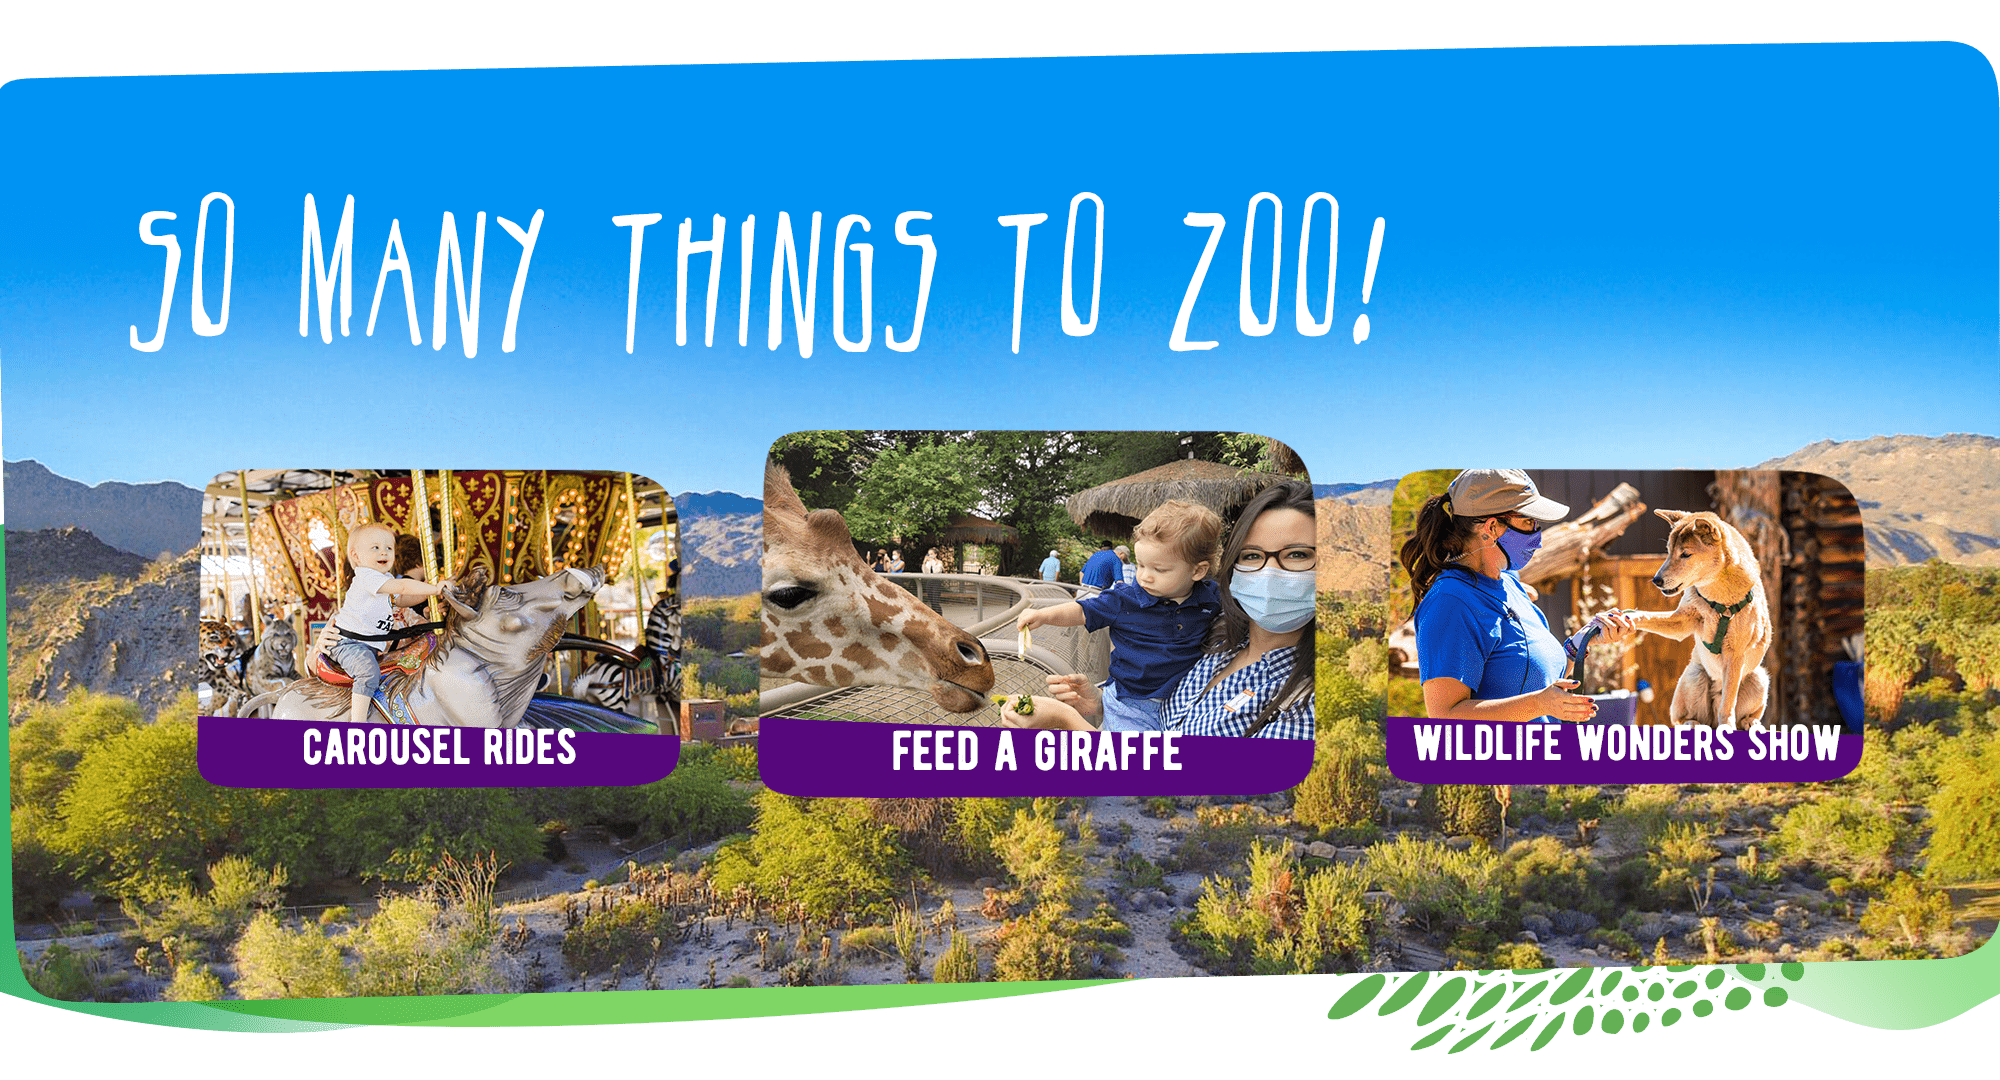 There are so many things to do at The Living Desert Zoo and Gardens. Click to learn more!